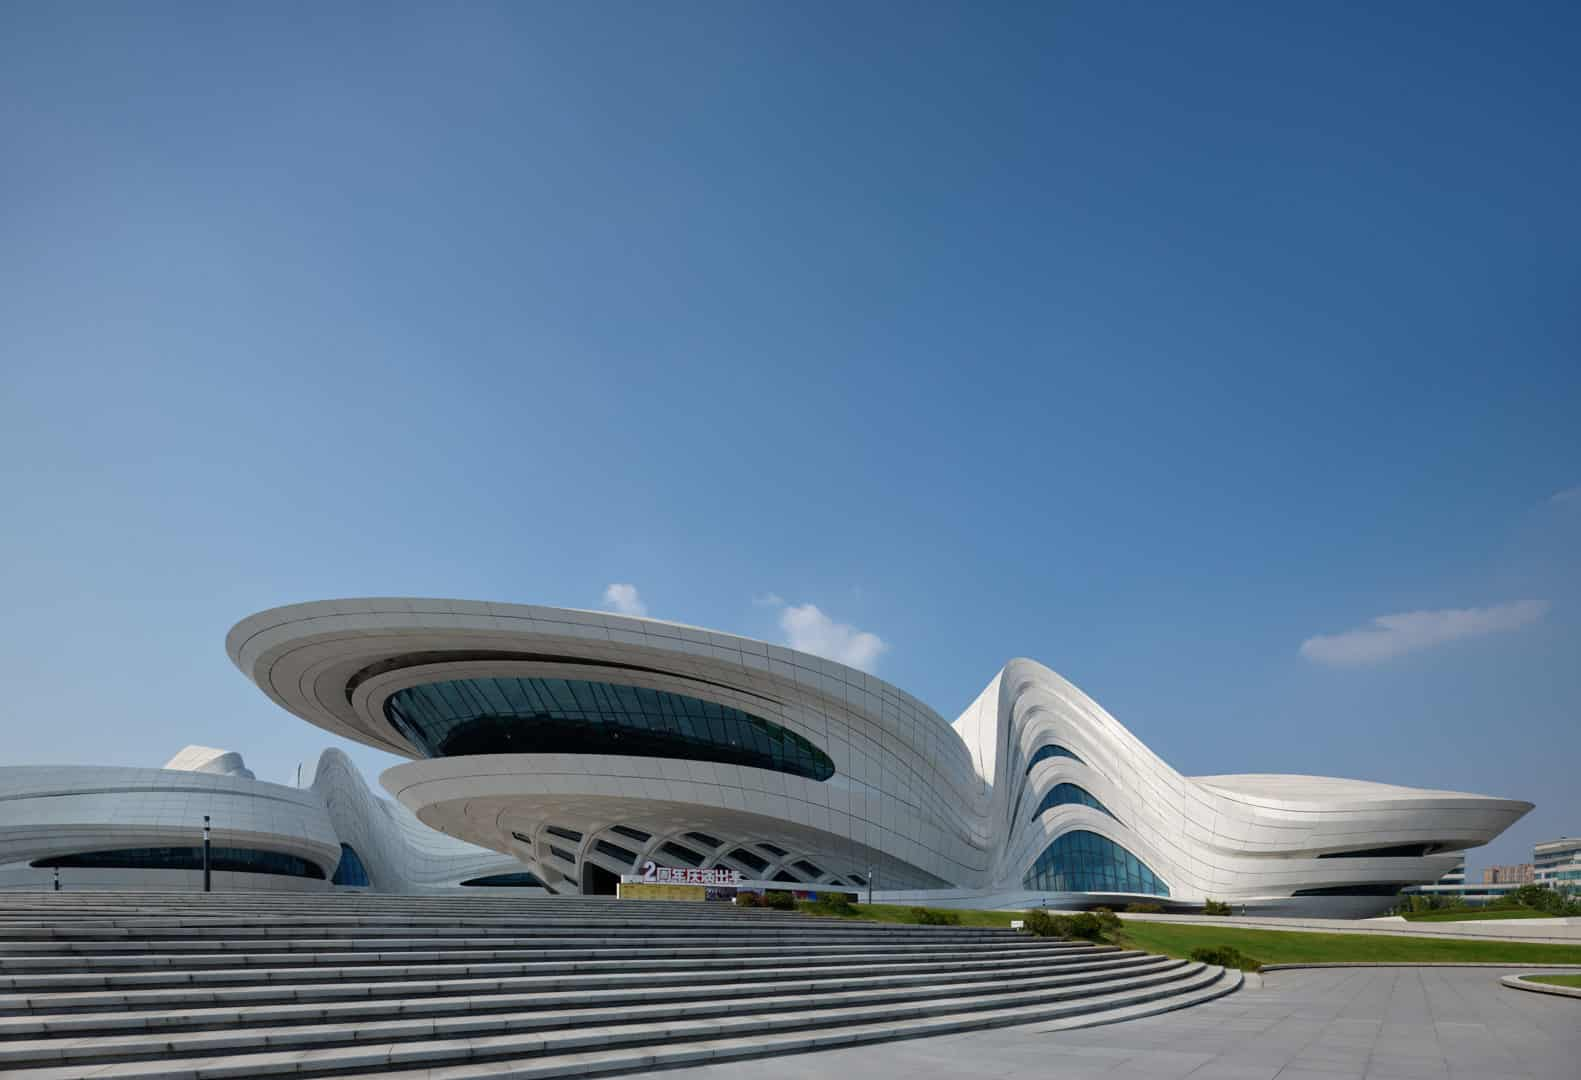 Zaha Hadid Projects -World Architecture Community Awards 2020 - Changsha Meixihu International Culture and Art Centre - 3